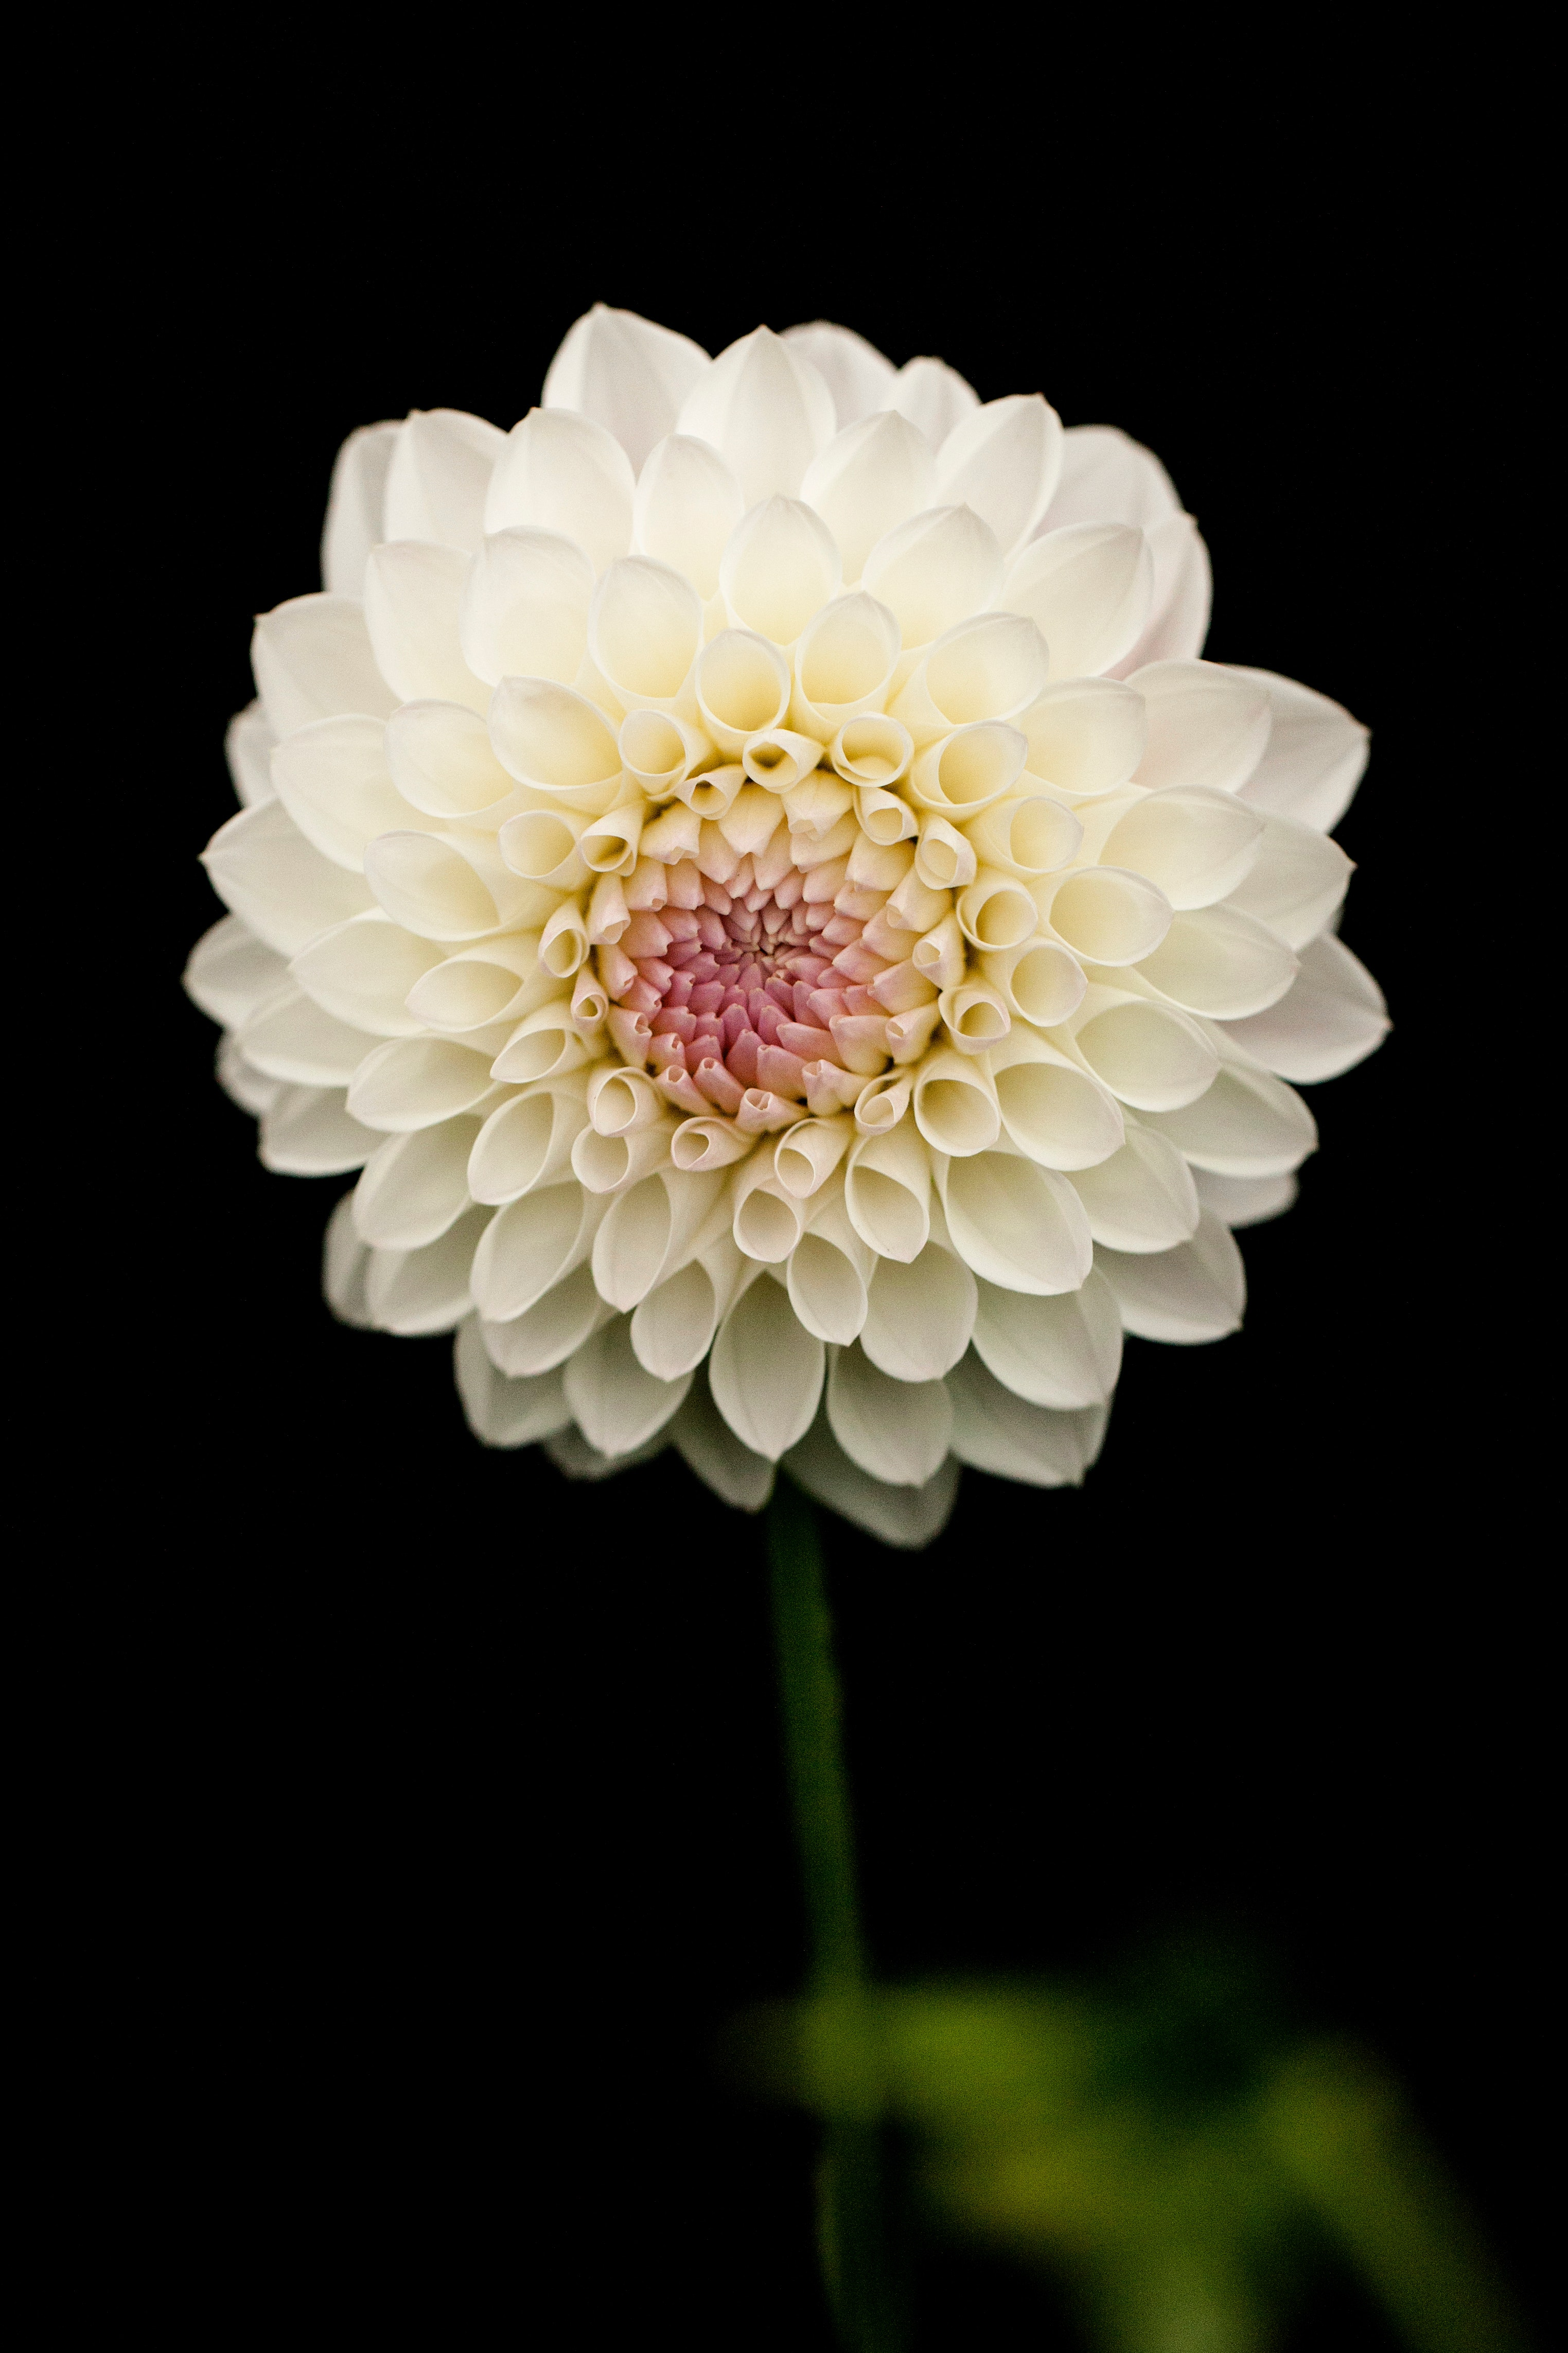 White petaled flower photo